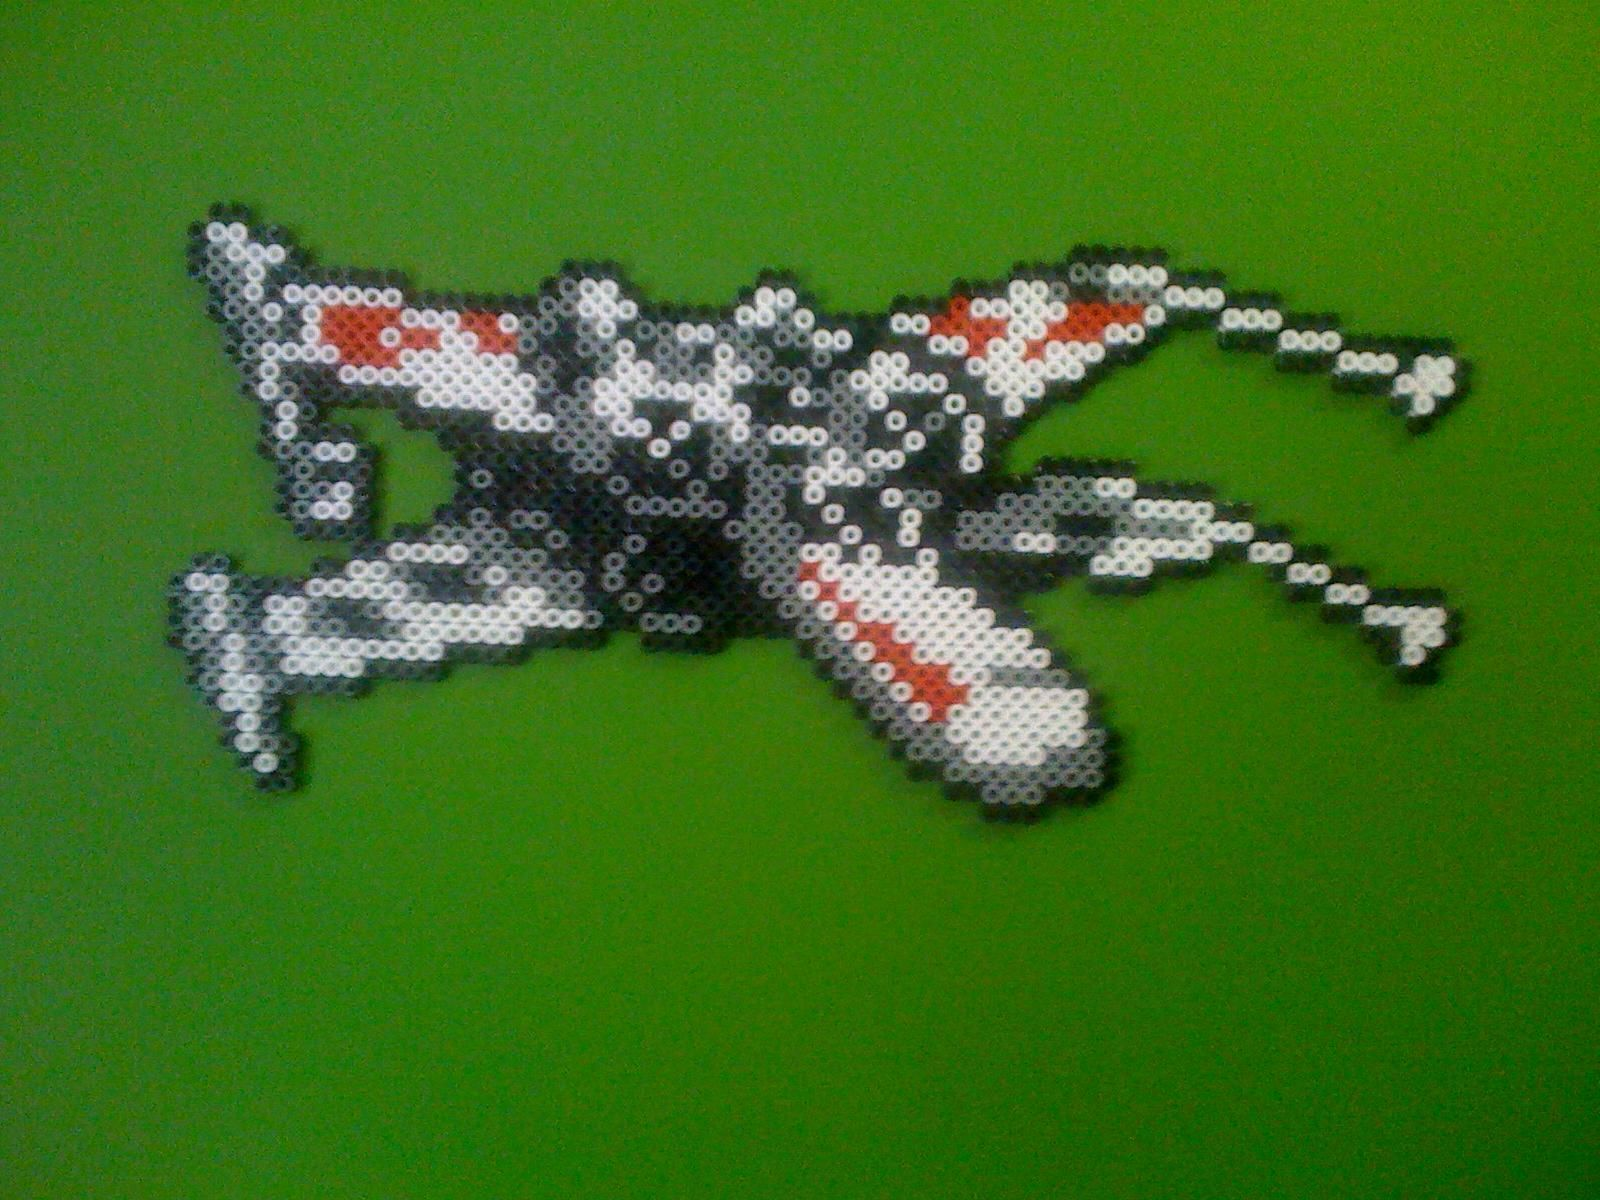 X Wing From Star Wars Nes Star Wars Crafts Perler Beads